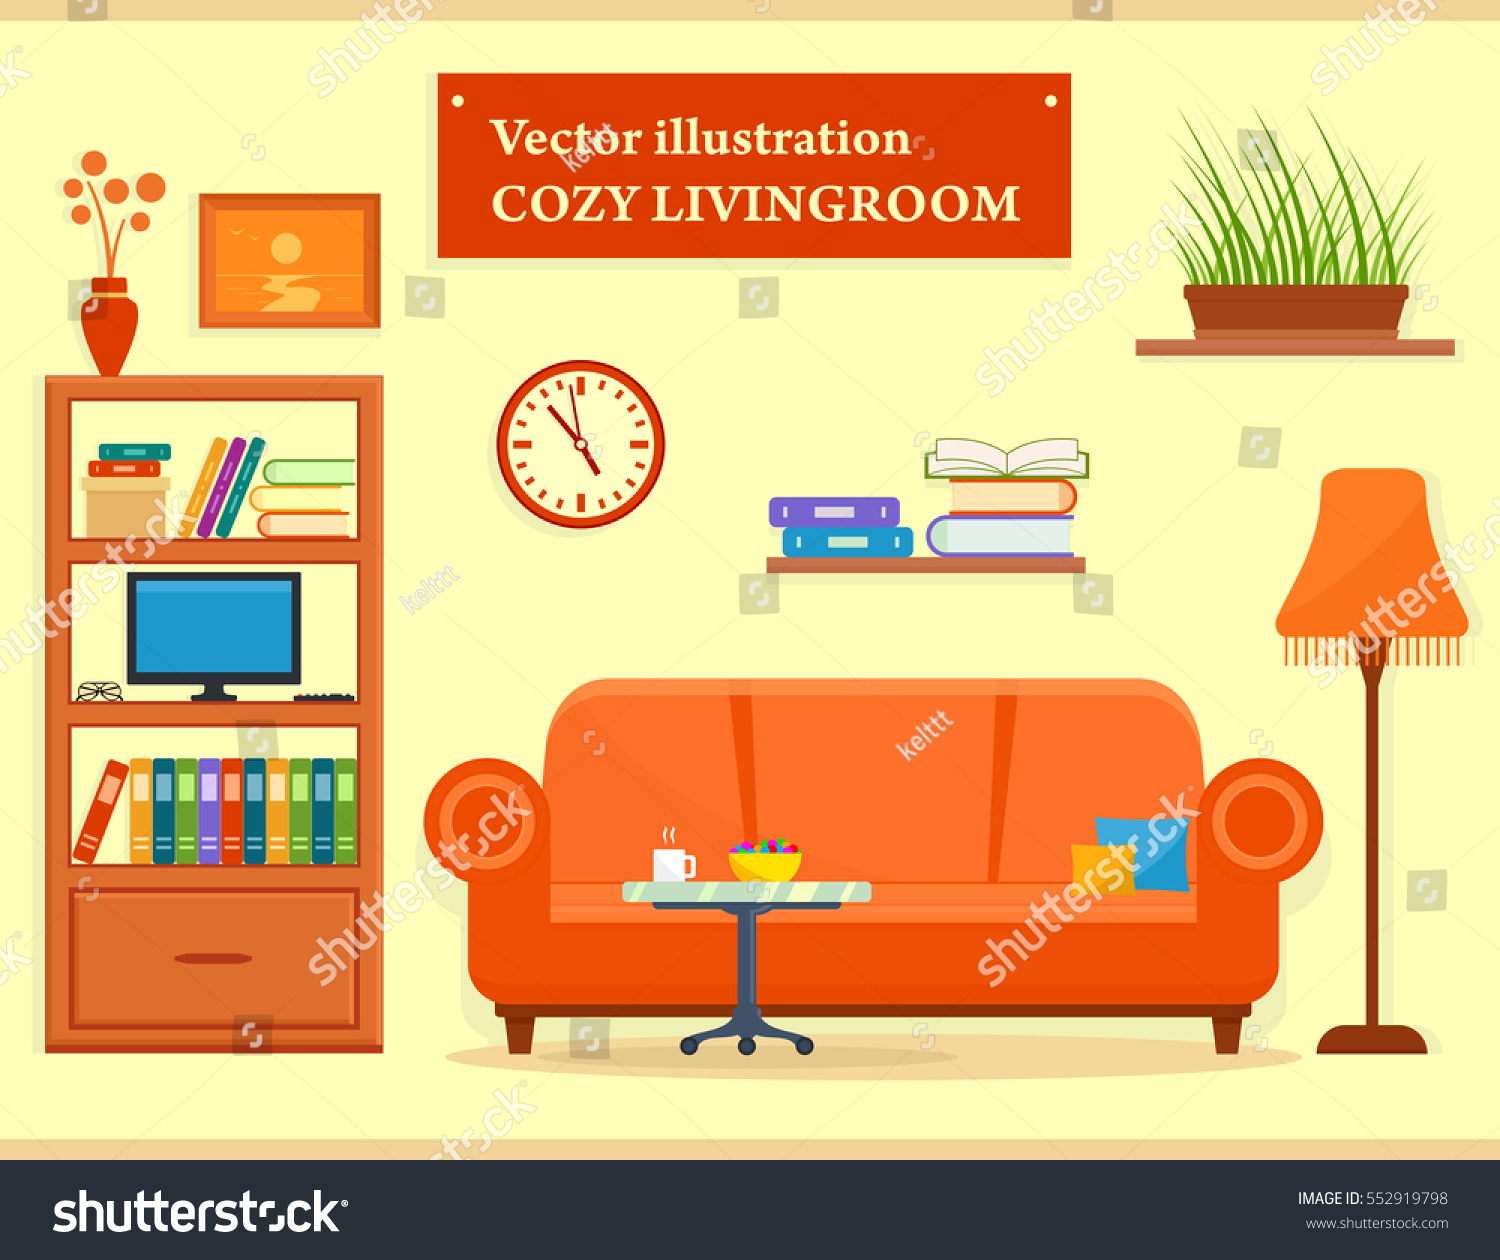 Cozy Living Room Vector Illustration: Modern Cozy Living Room Interior Sofa Stock Vector